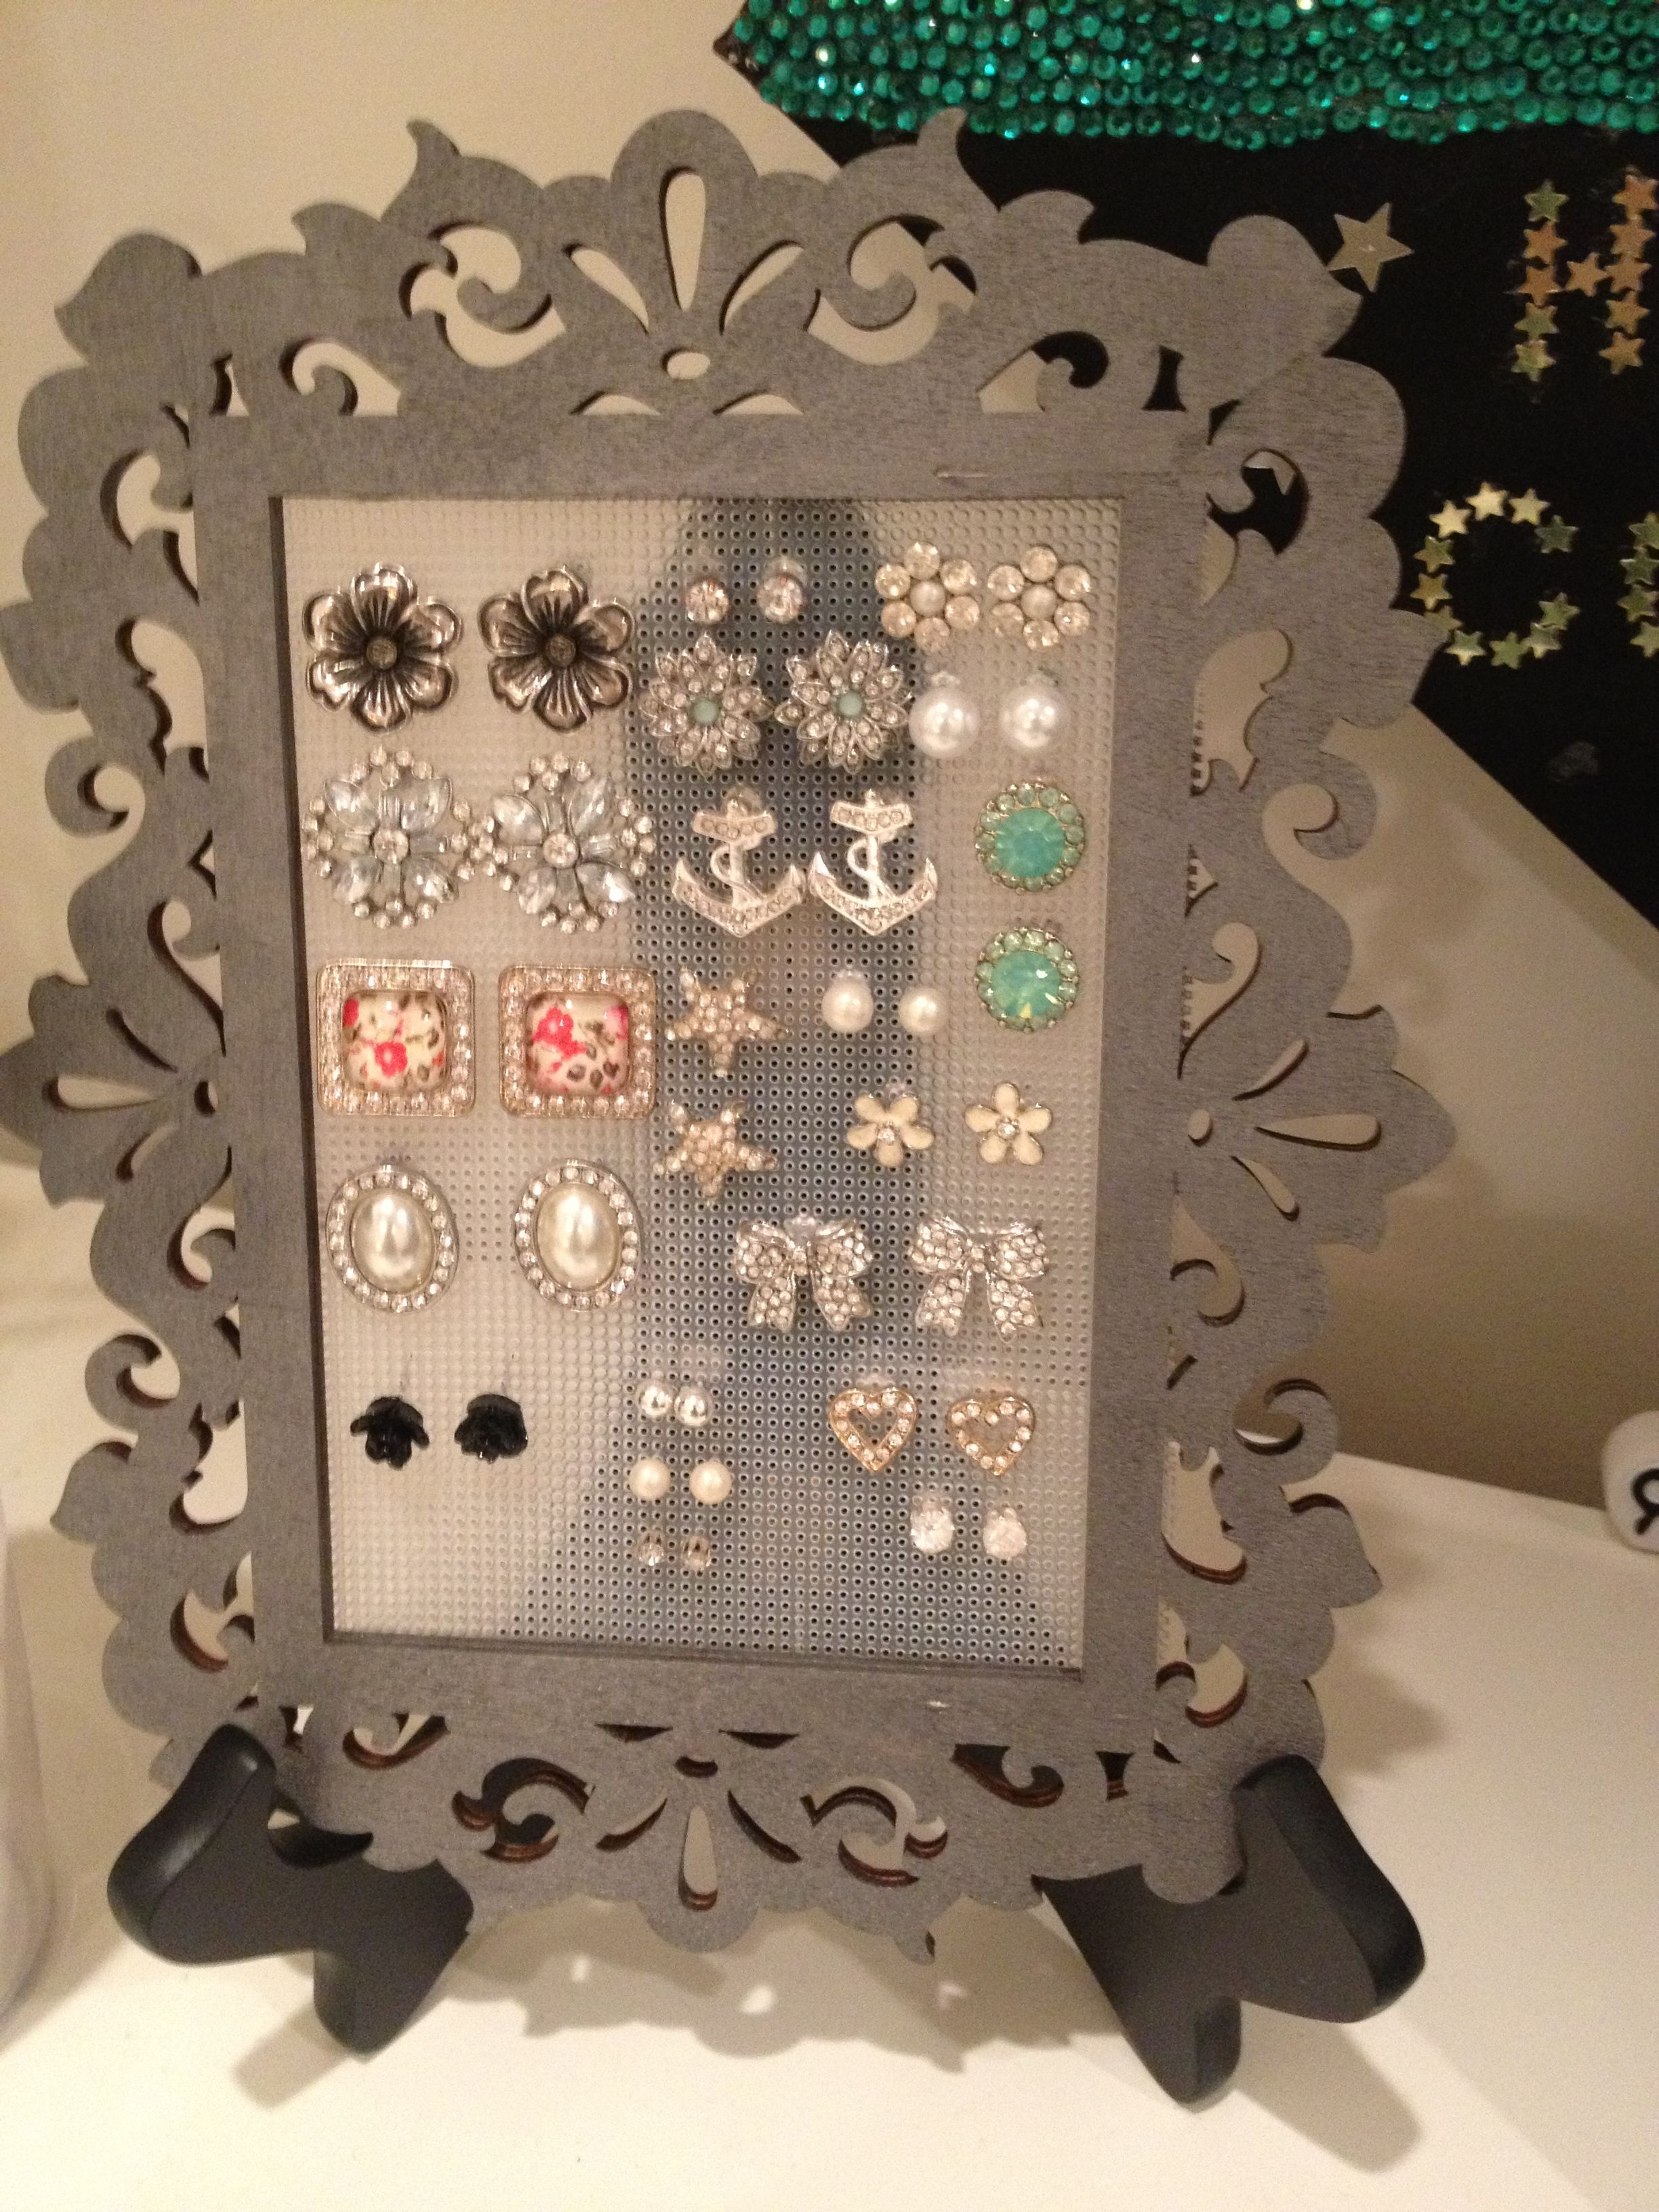 Mesh Earring Holder : earring, holder, Budget, Arrange, Accessories, Holder,, Earring, Storage